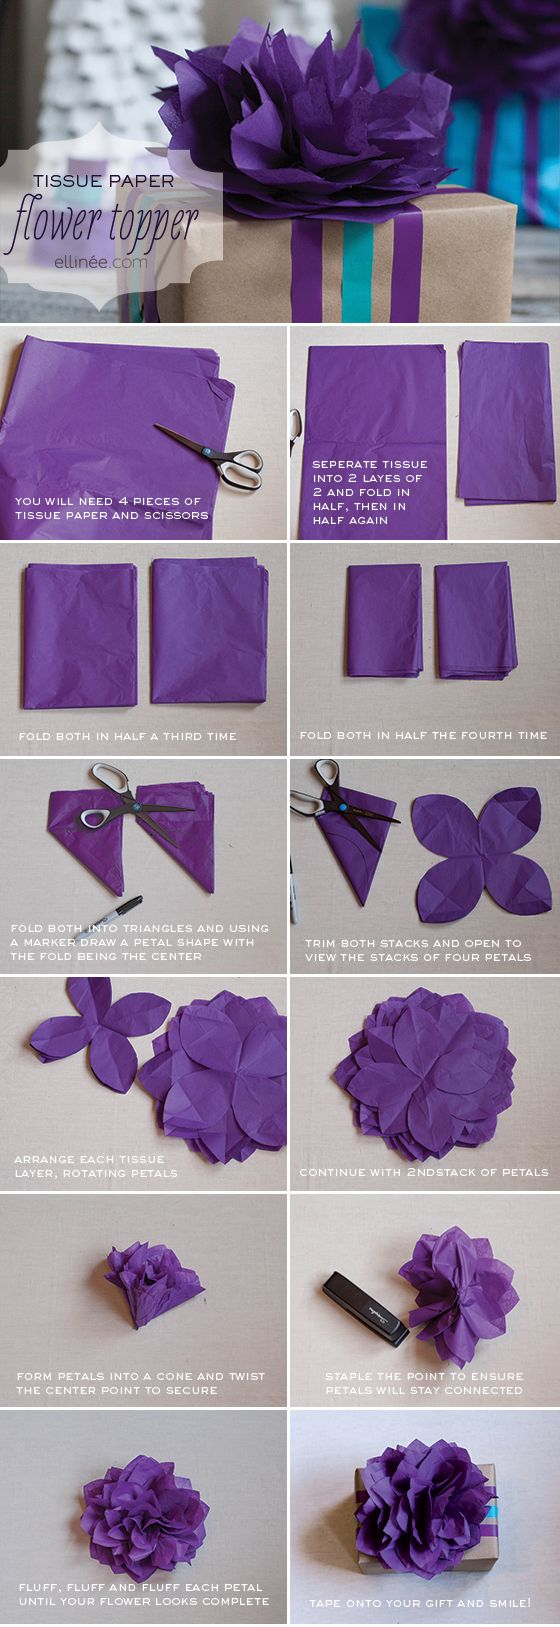 DIY Tissue Paper Flower Tutorial  Can't remember if I've pinned already, but I love it!